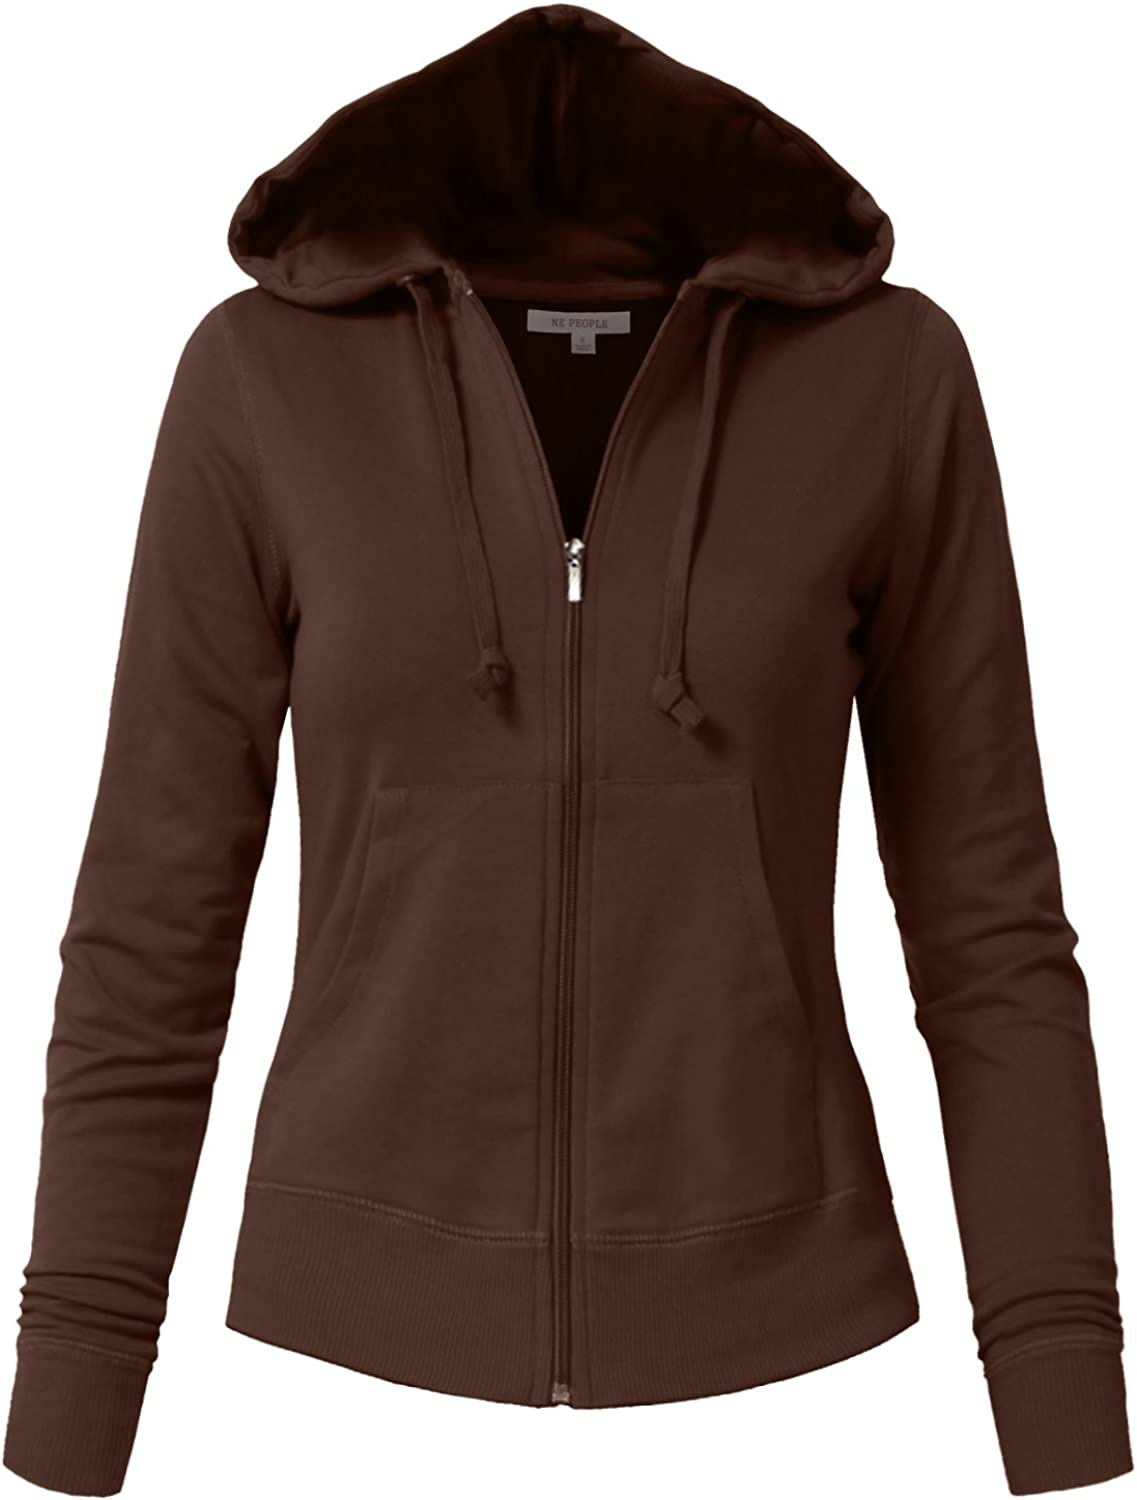 NE PEOPLE Womens Basic Zip Up Hoodie Jacket with Pockets S-3XL